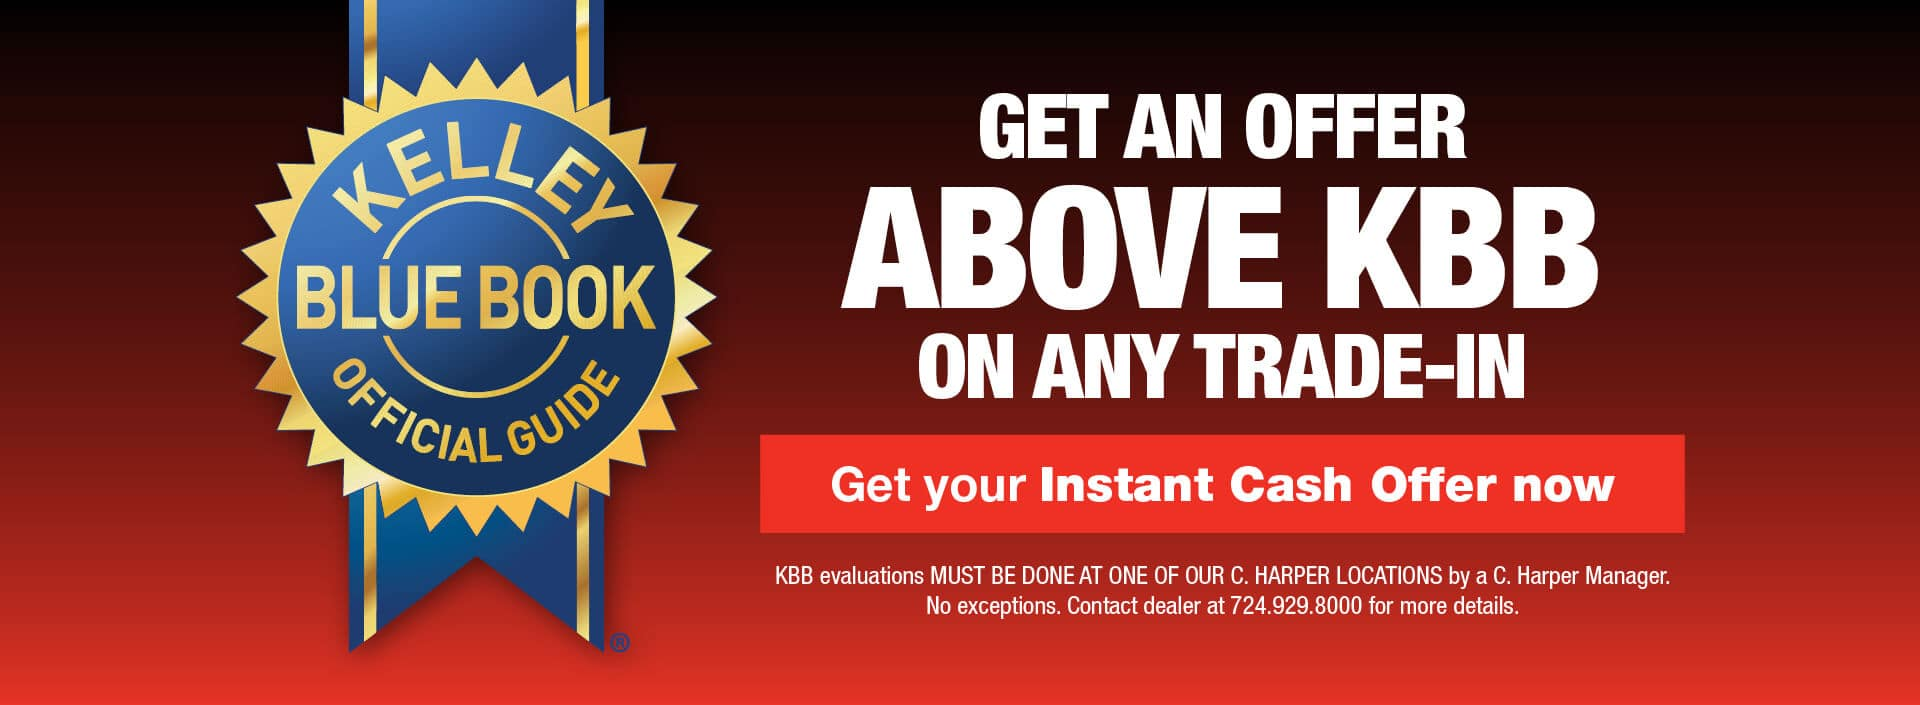 Get an offer above KBB on any trade-in